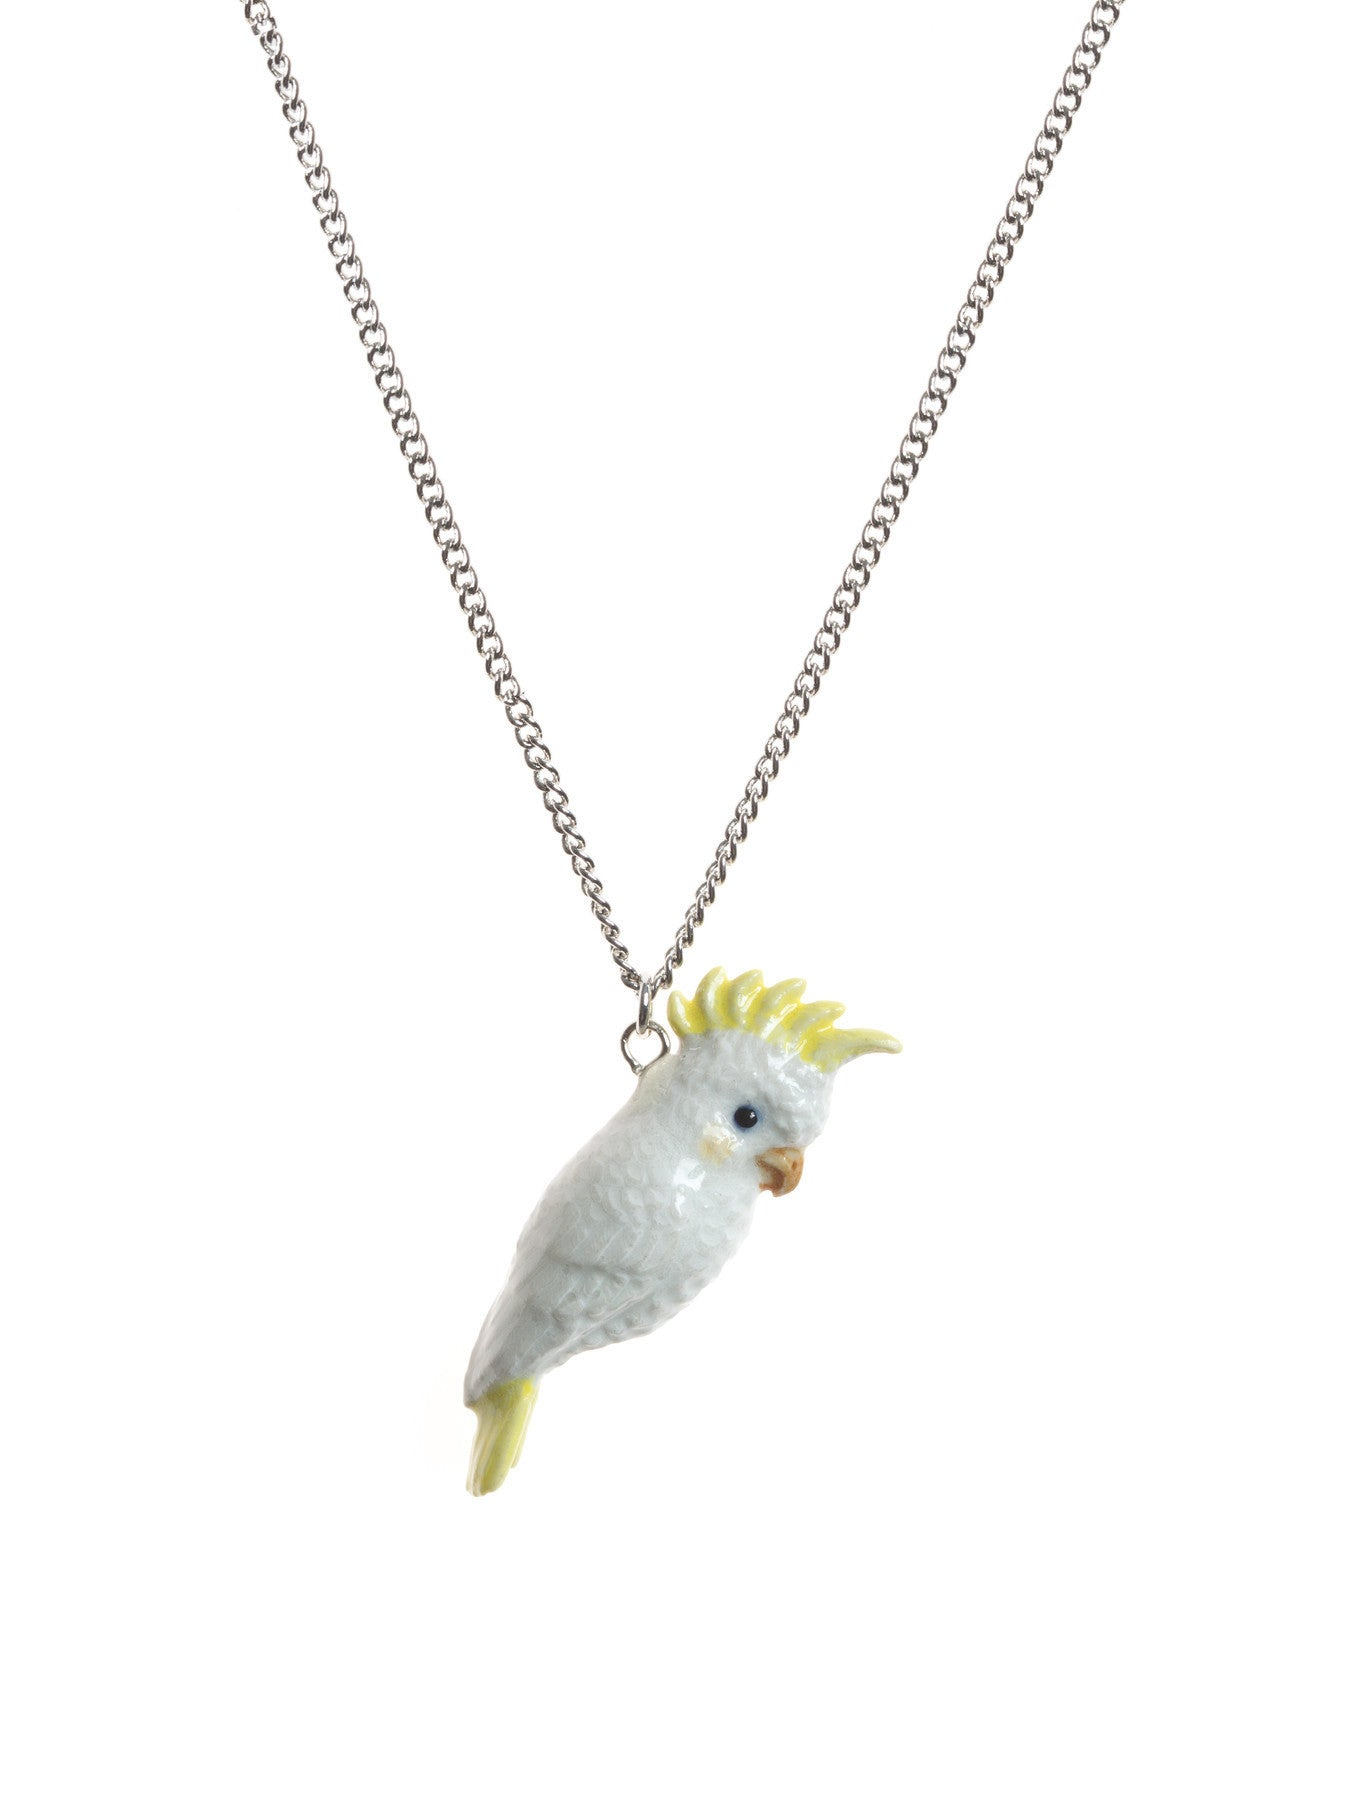 White Cockatoo Necklace